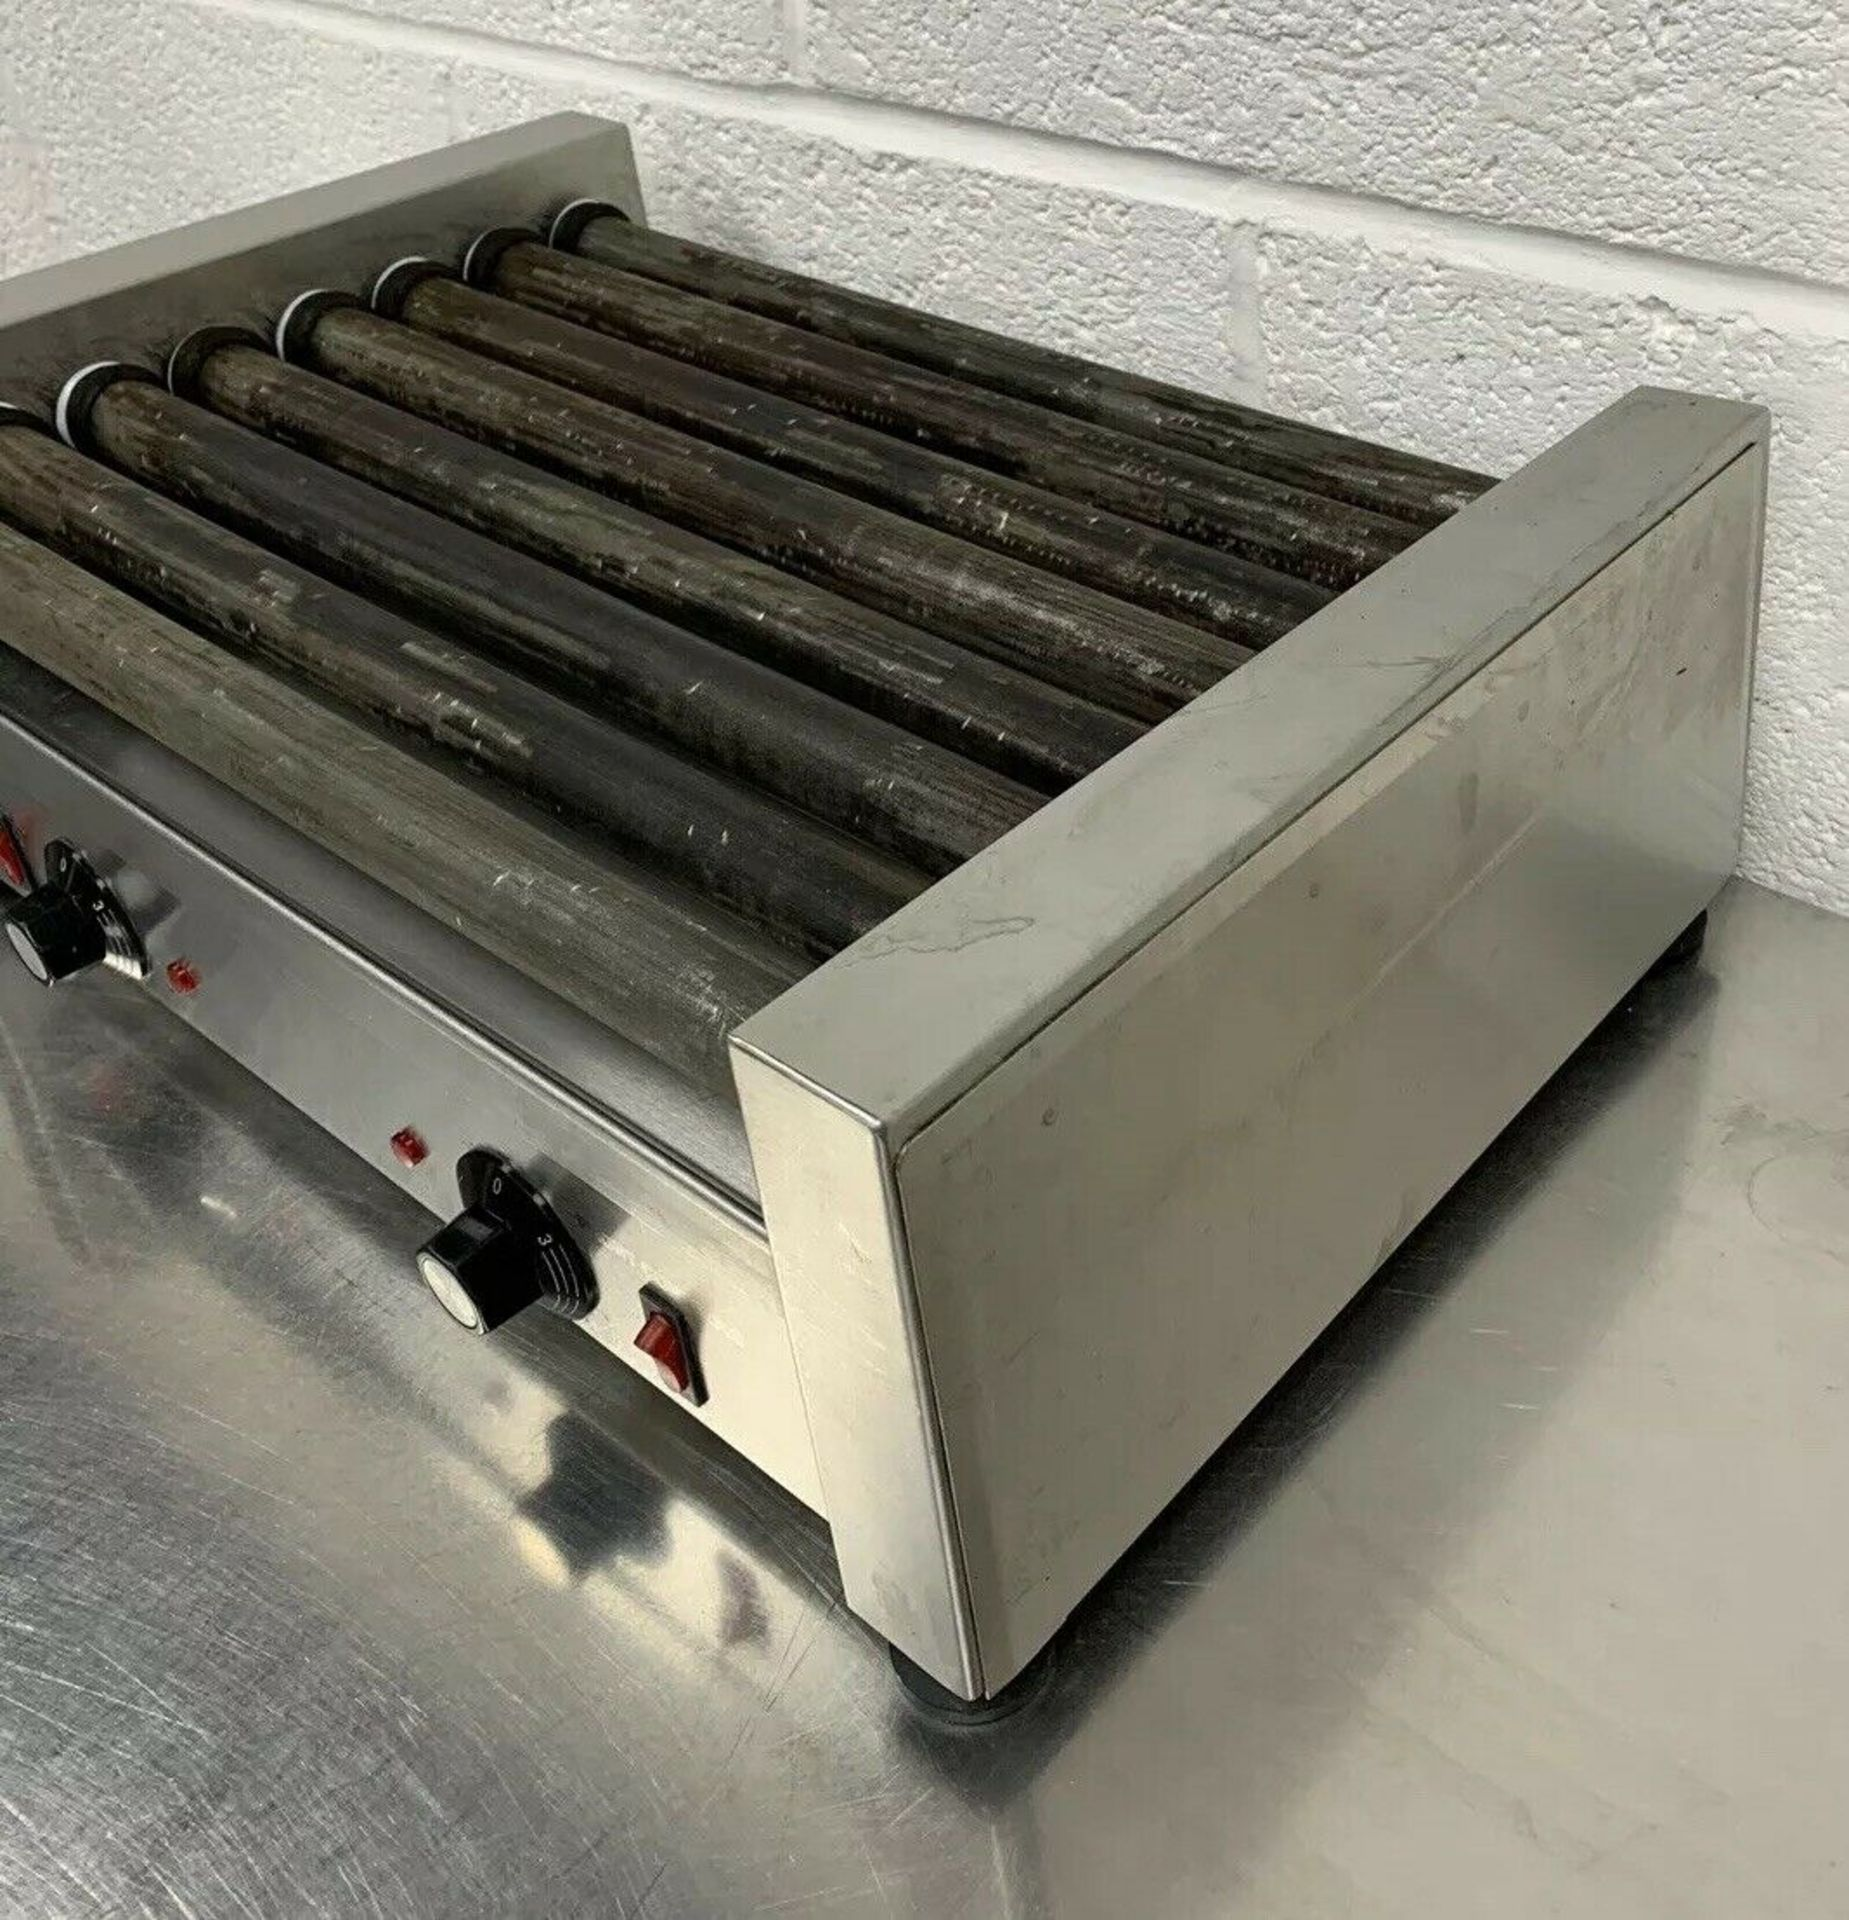 Lot 63 - FKI GL8 Hot Dog Grill